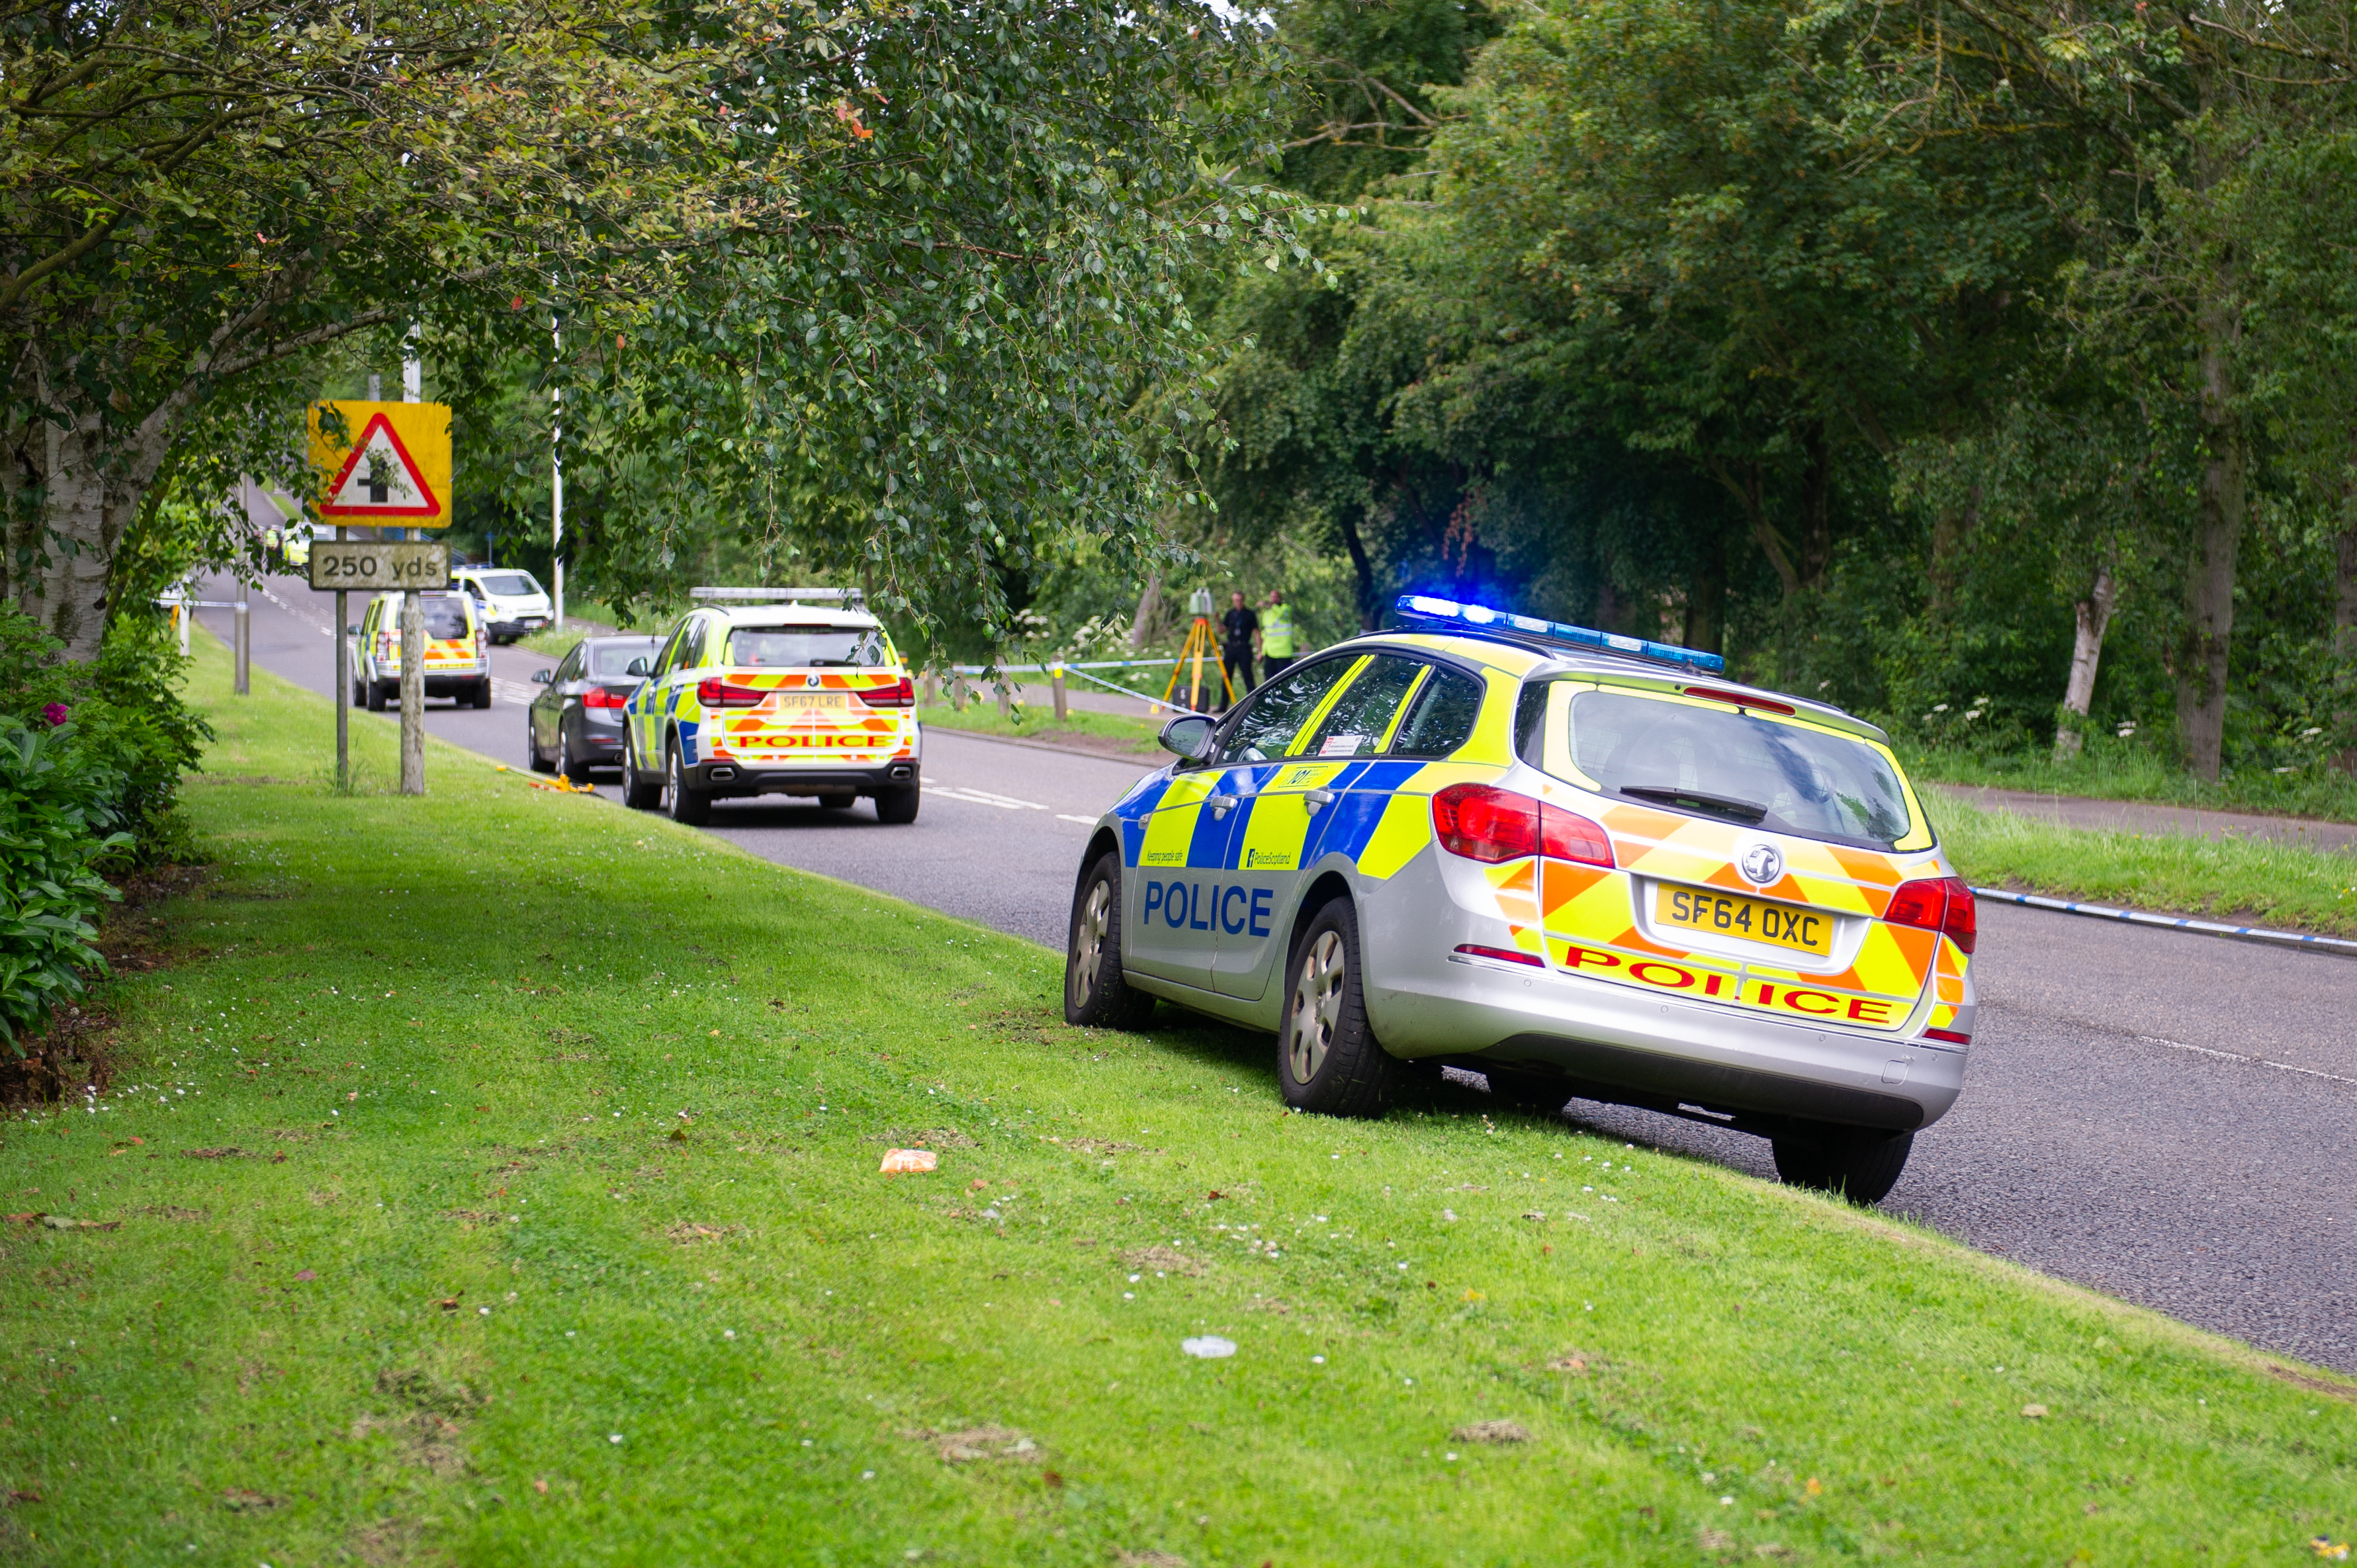 Parts of Riverside Park were sealed off as police investigated the incident.